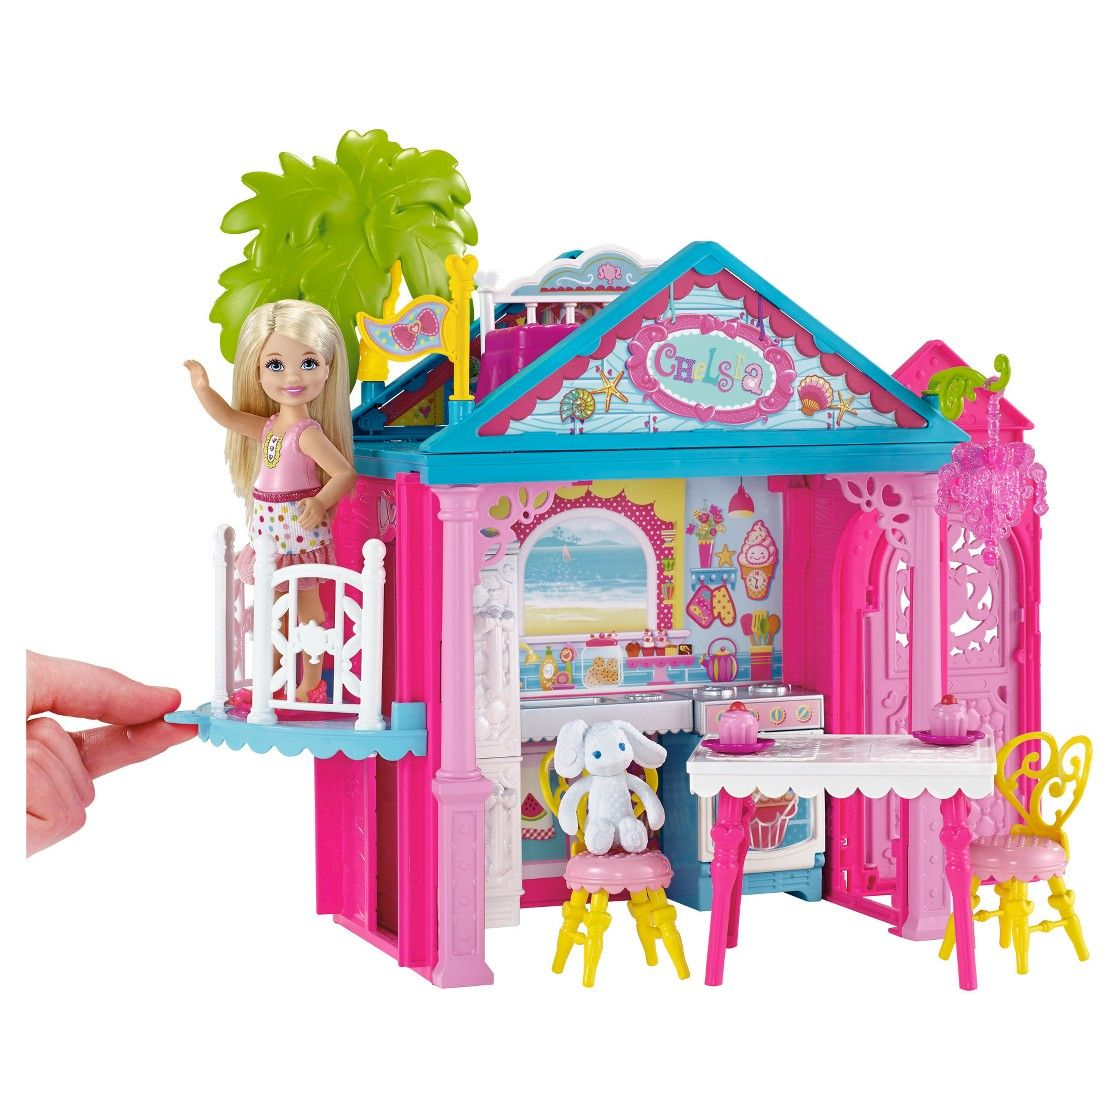 Barbie deluxe furniture stovetop to tabletop kitchen doll target - Barbie Club Chelsea Doll And Playhouse